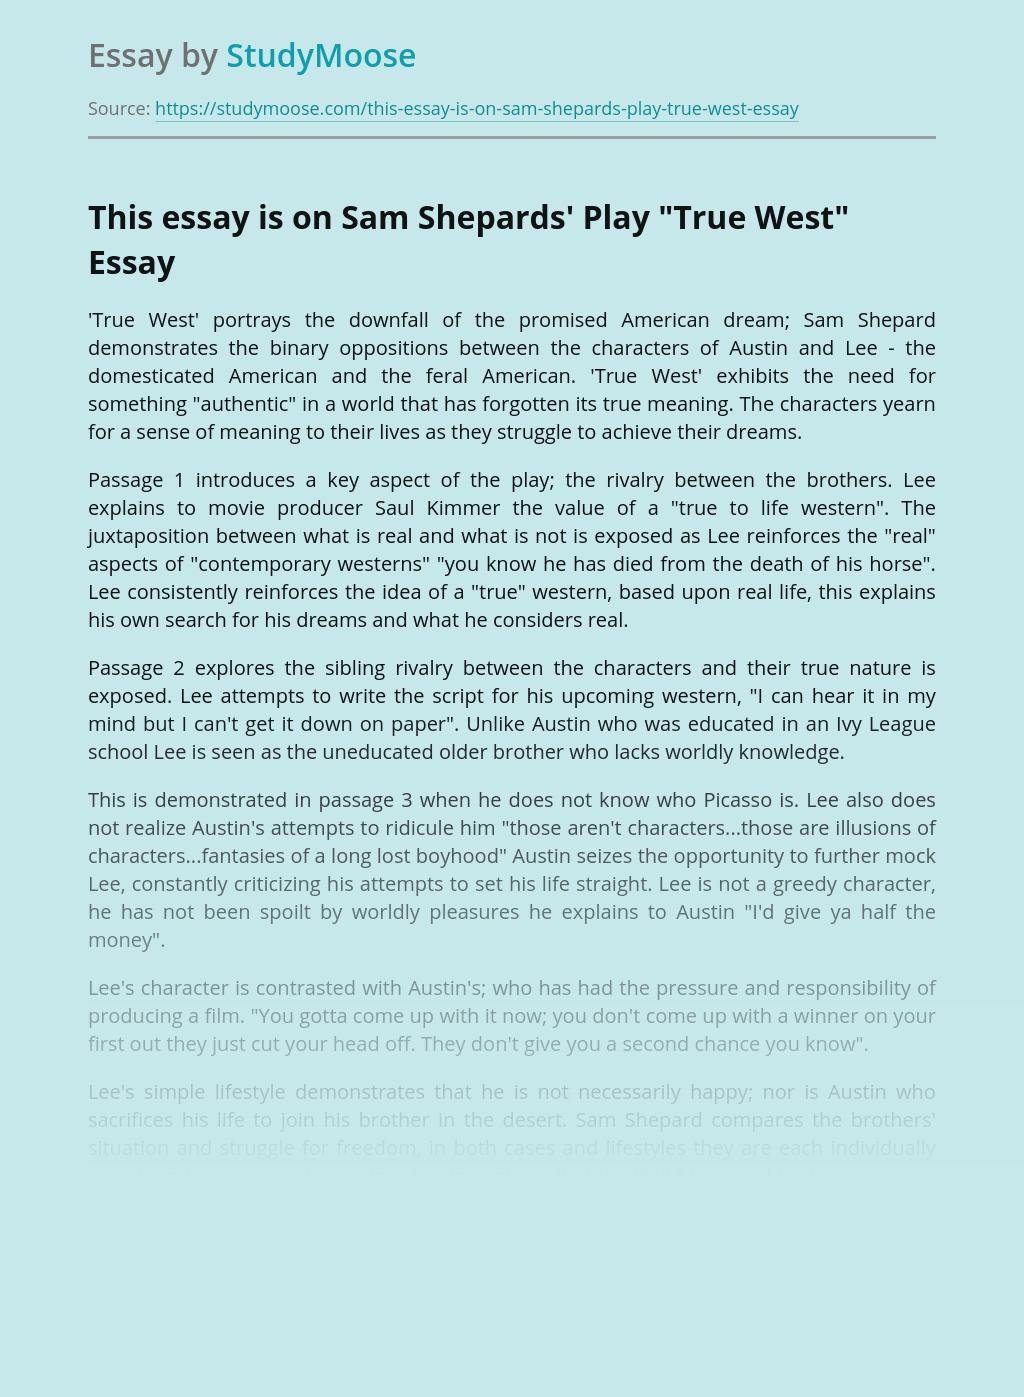 """This essay is on Sam Shepards' Play """"True West"""""""